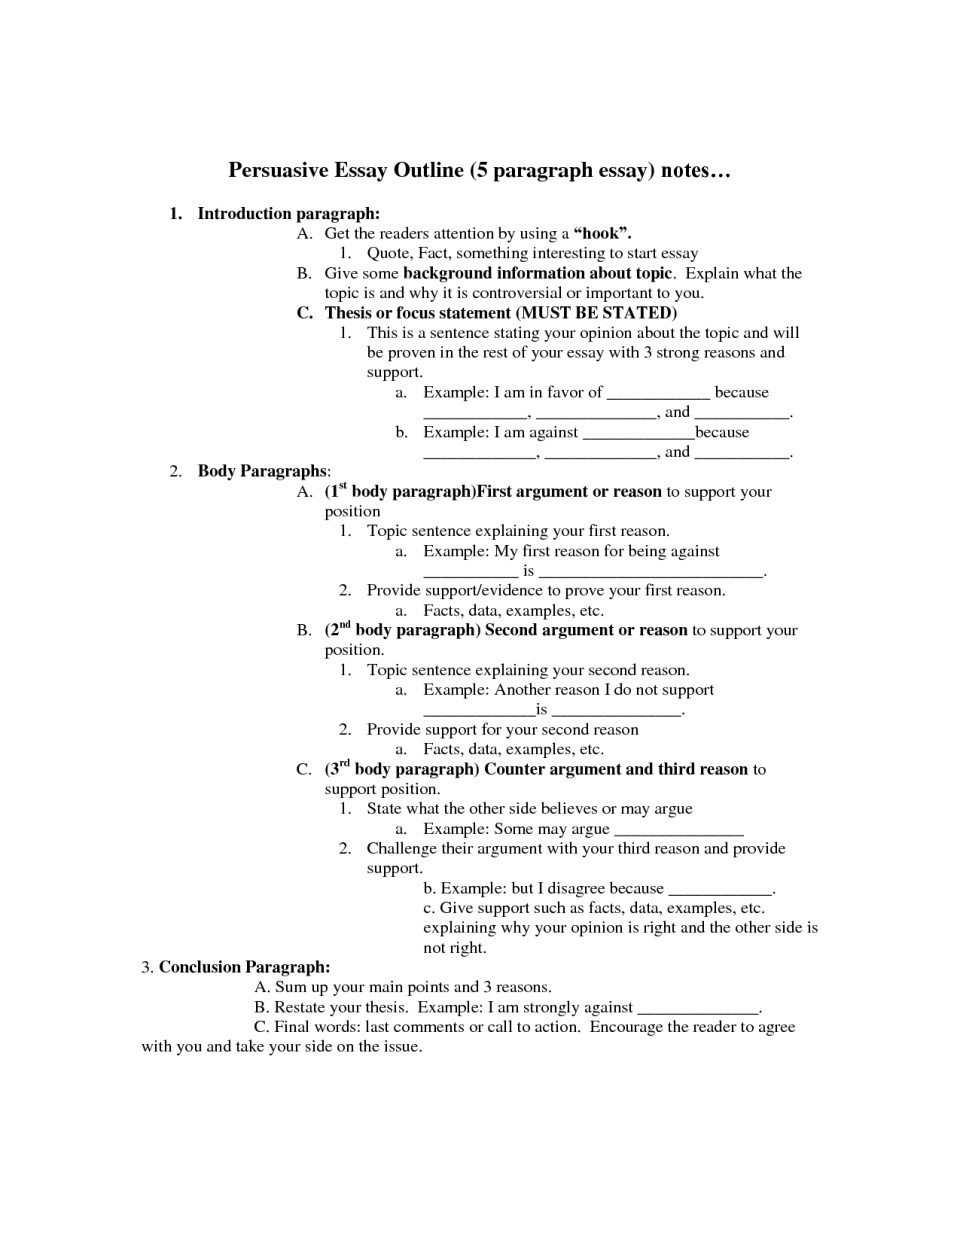 006 Persuasive Essay Outline Unbelievable Format Middle School Good Topics 5th Grade Pdf 960